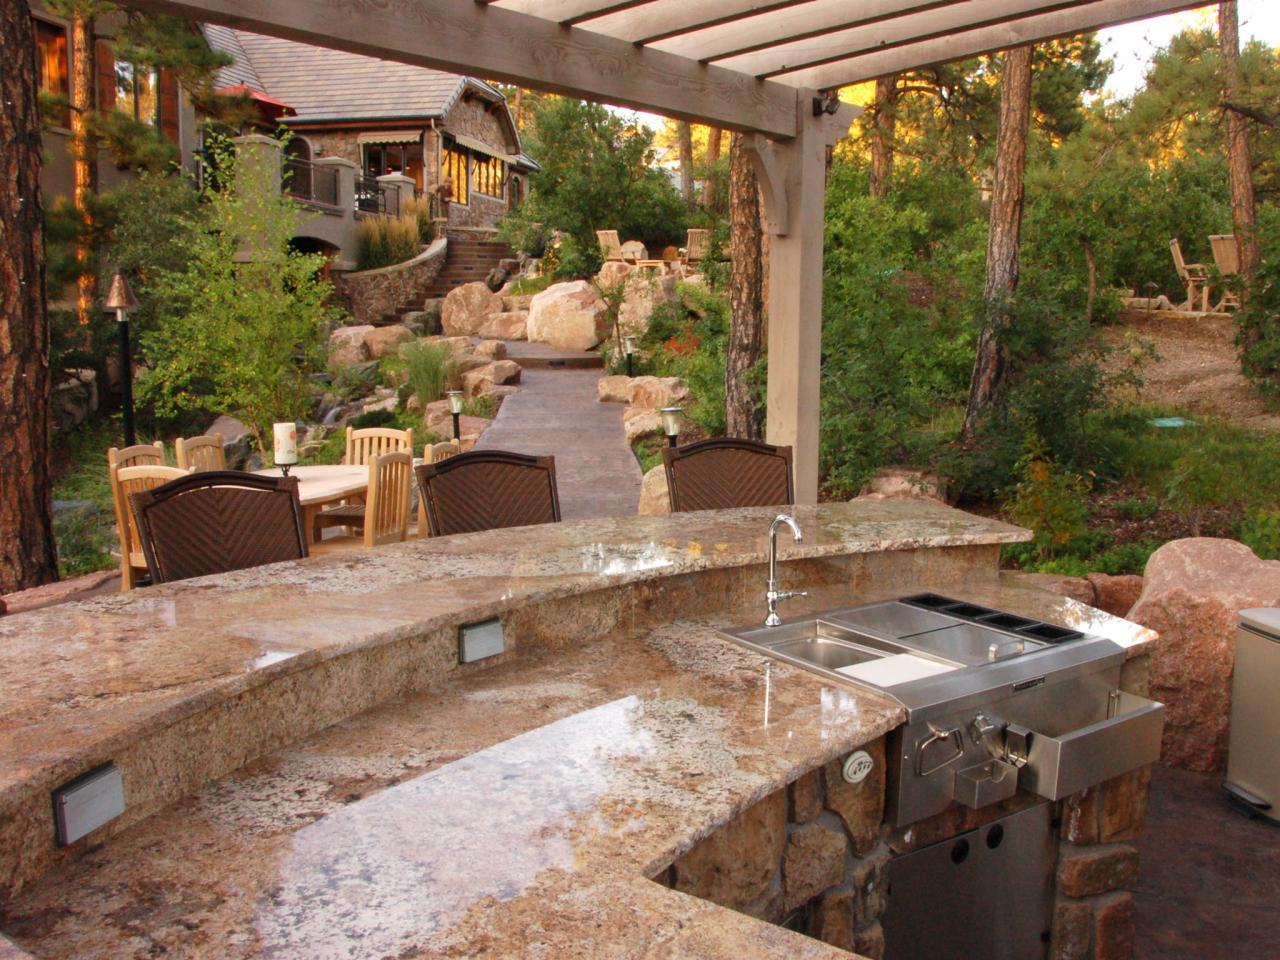 outdoor kitchen ideas outdoor kitchen design ideas UMQXQGD